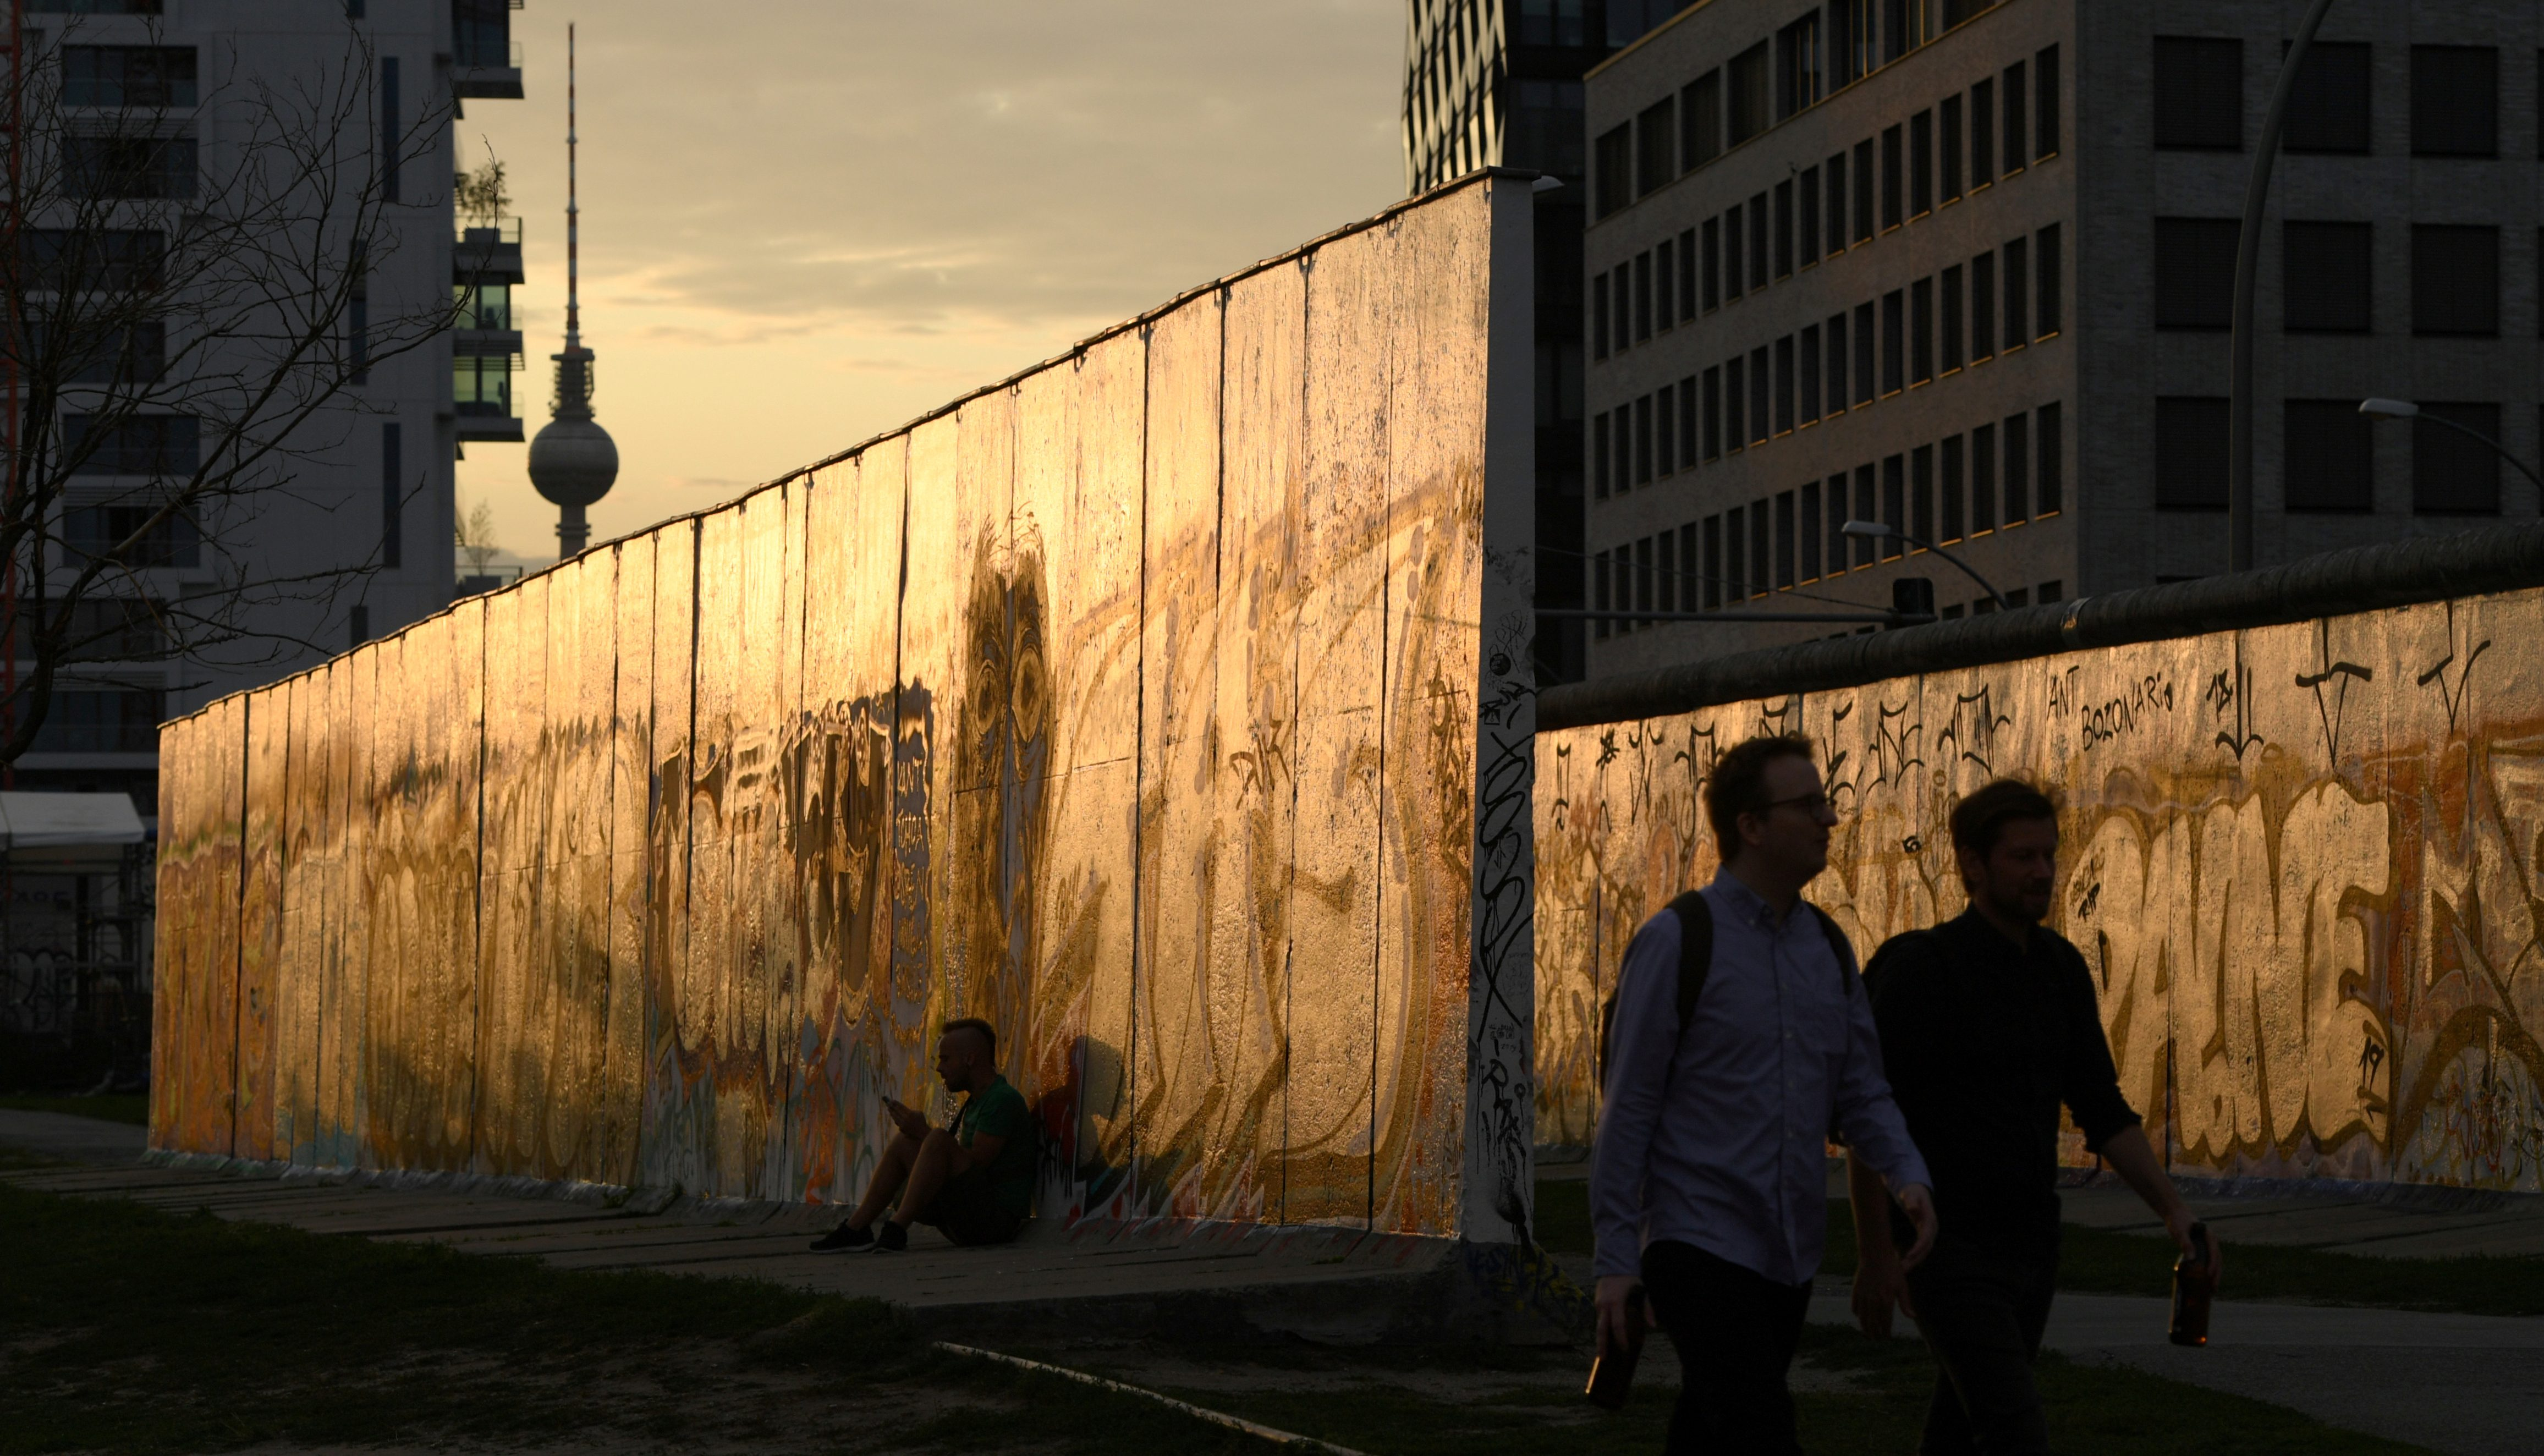 The East Side Gallery, a segment of the original wall which has been turned into an open-air museum, August 12, 2019. (Annegret Hilse/Reuters)